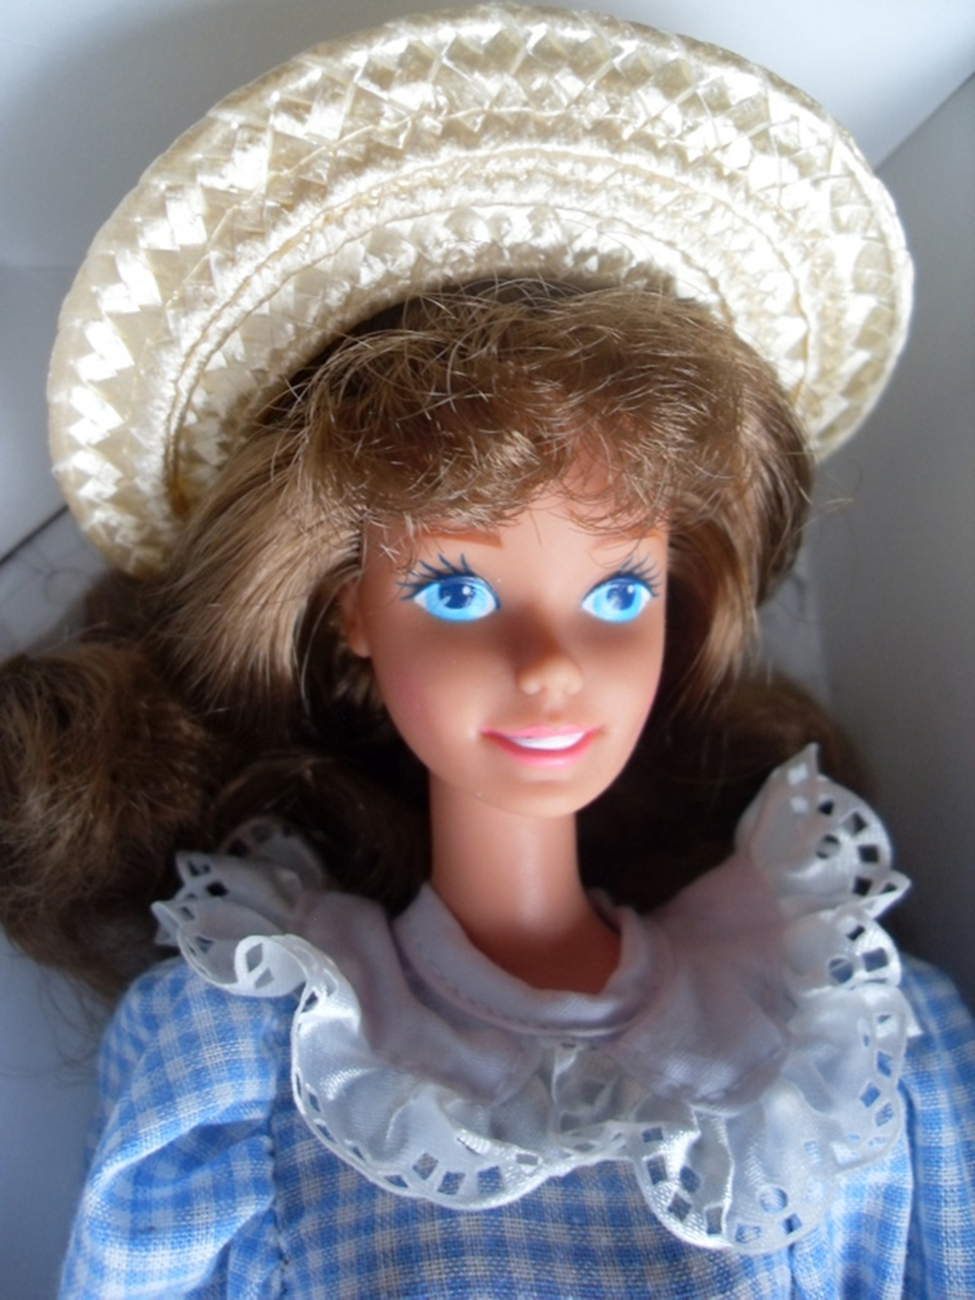 1992 SERIES I   LITTLE DEBBIE  DOLL  FIRST BARBIE'S COLLECTOR  Edition NRFB